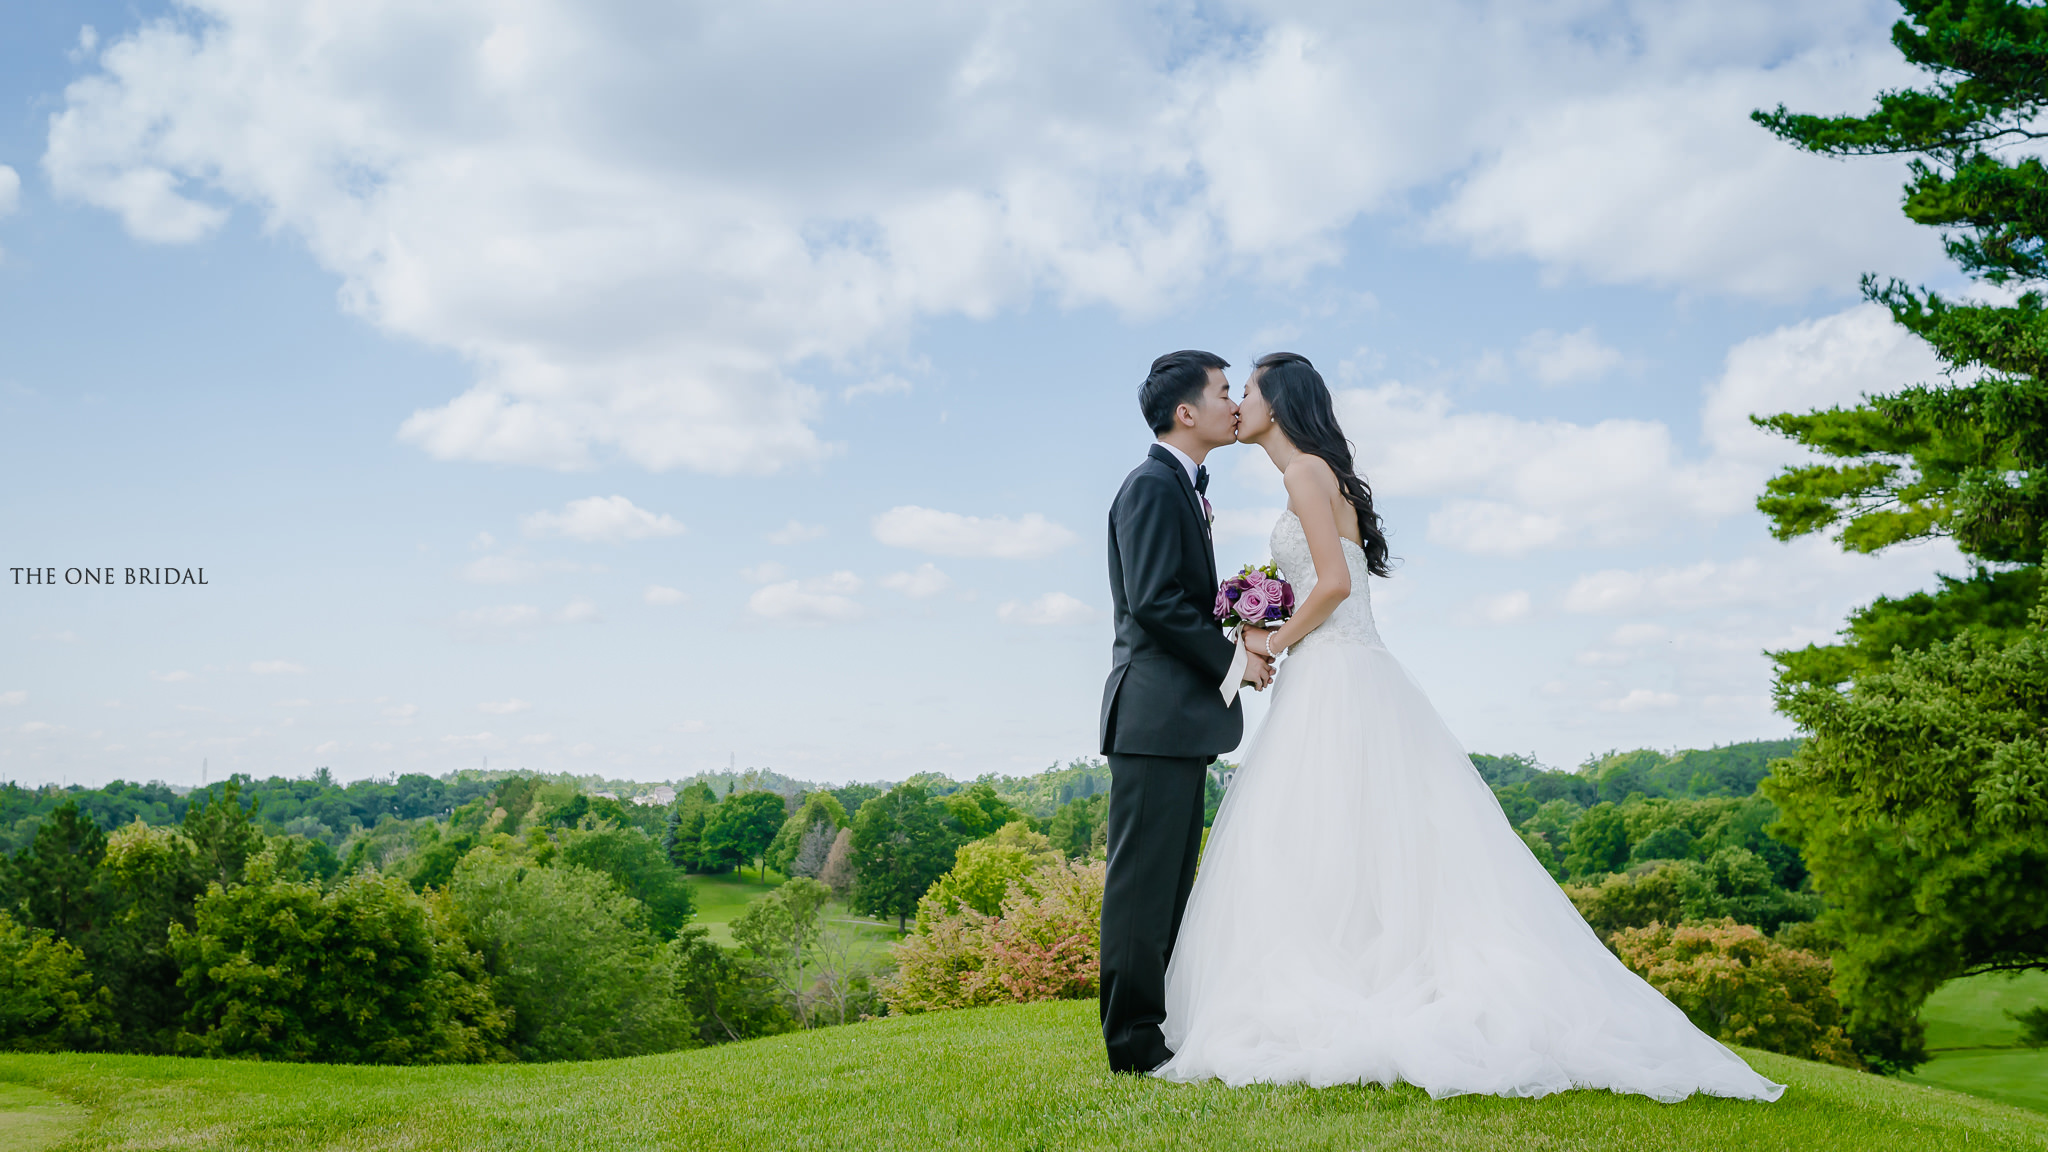 The Country Club Wedding, Woodbridge